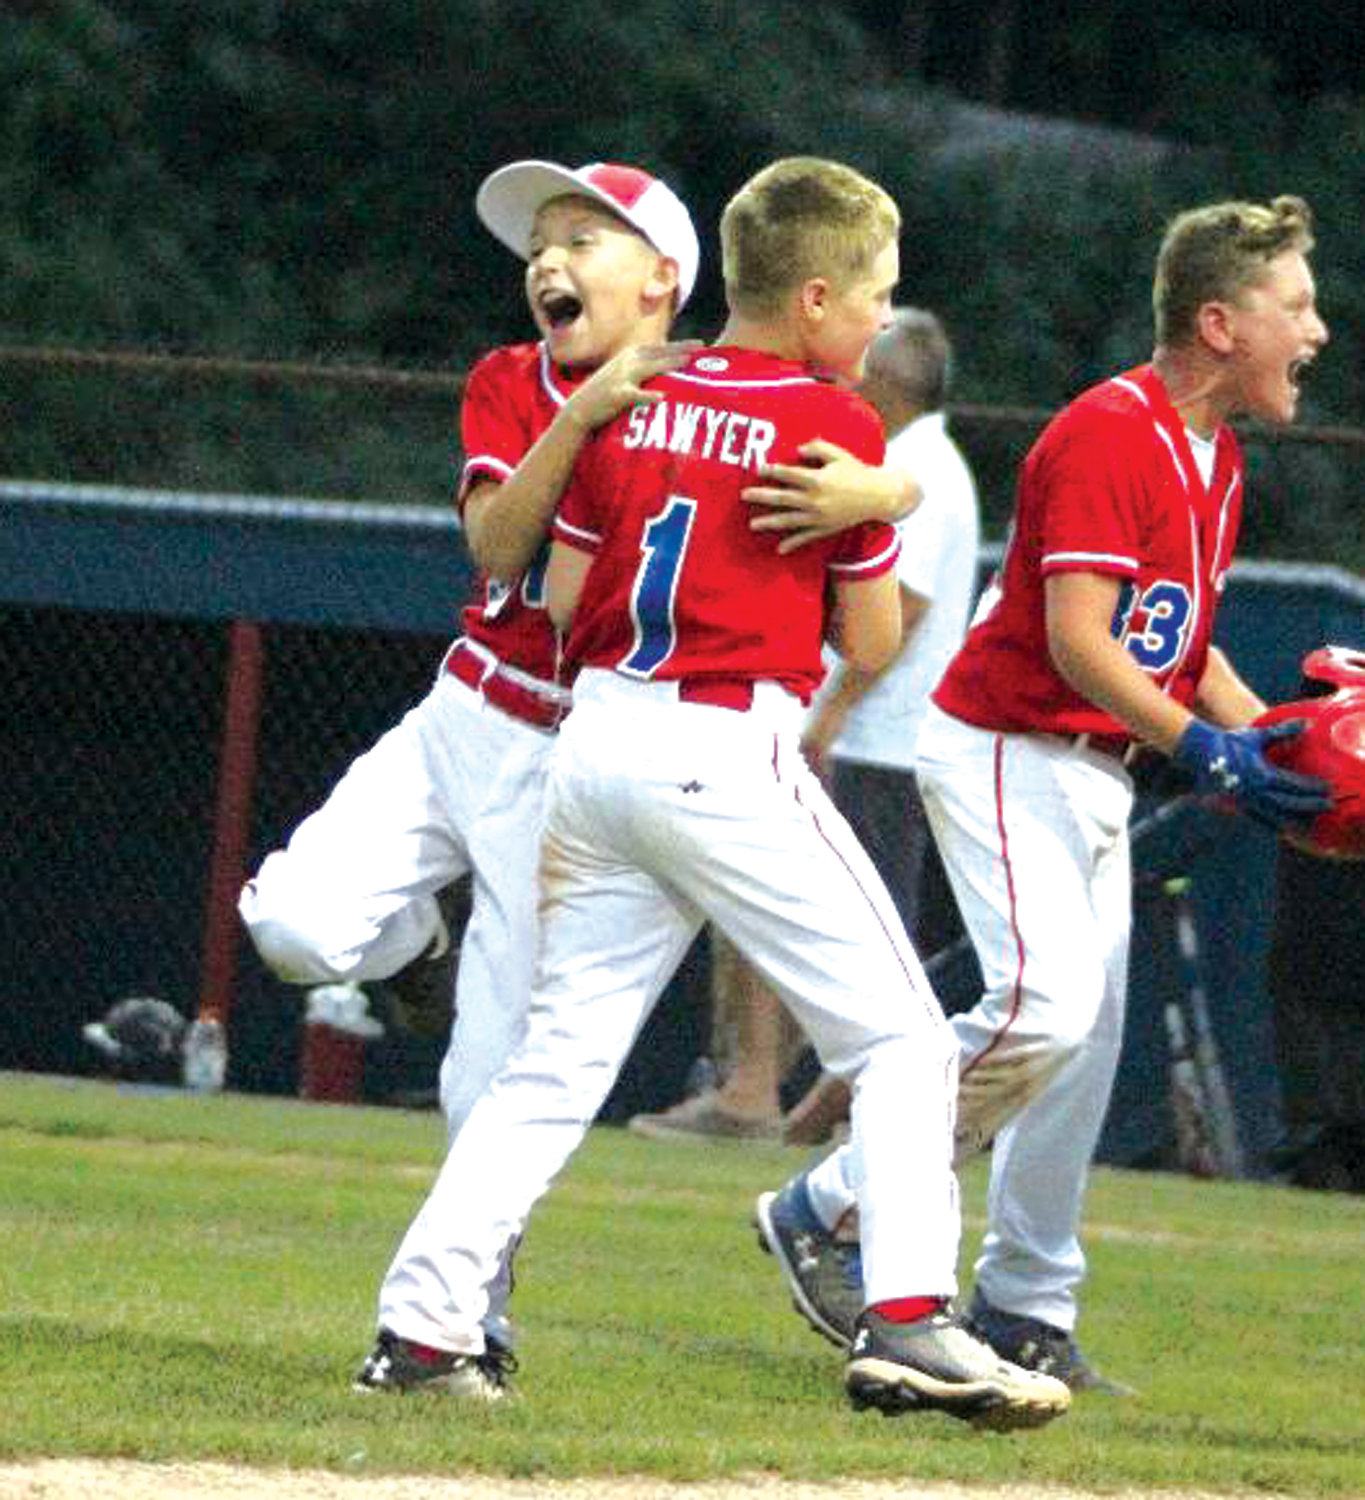 CELEBRATE GOOD TIMES: Members of the WCA 10's celebrate after winning the District 3 title.